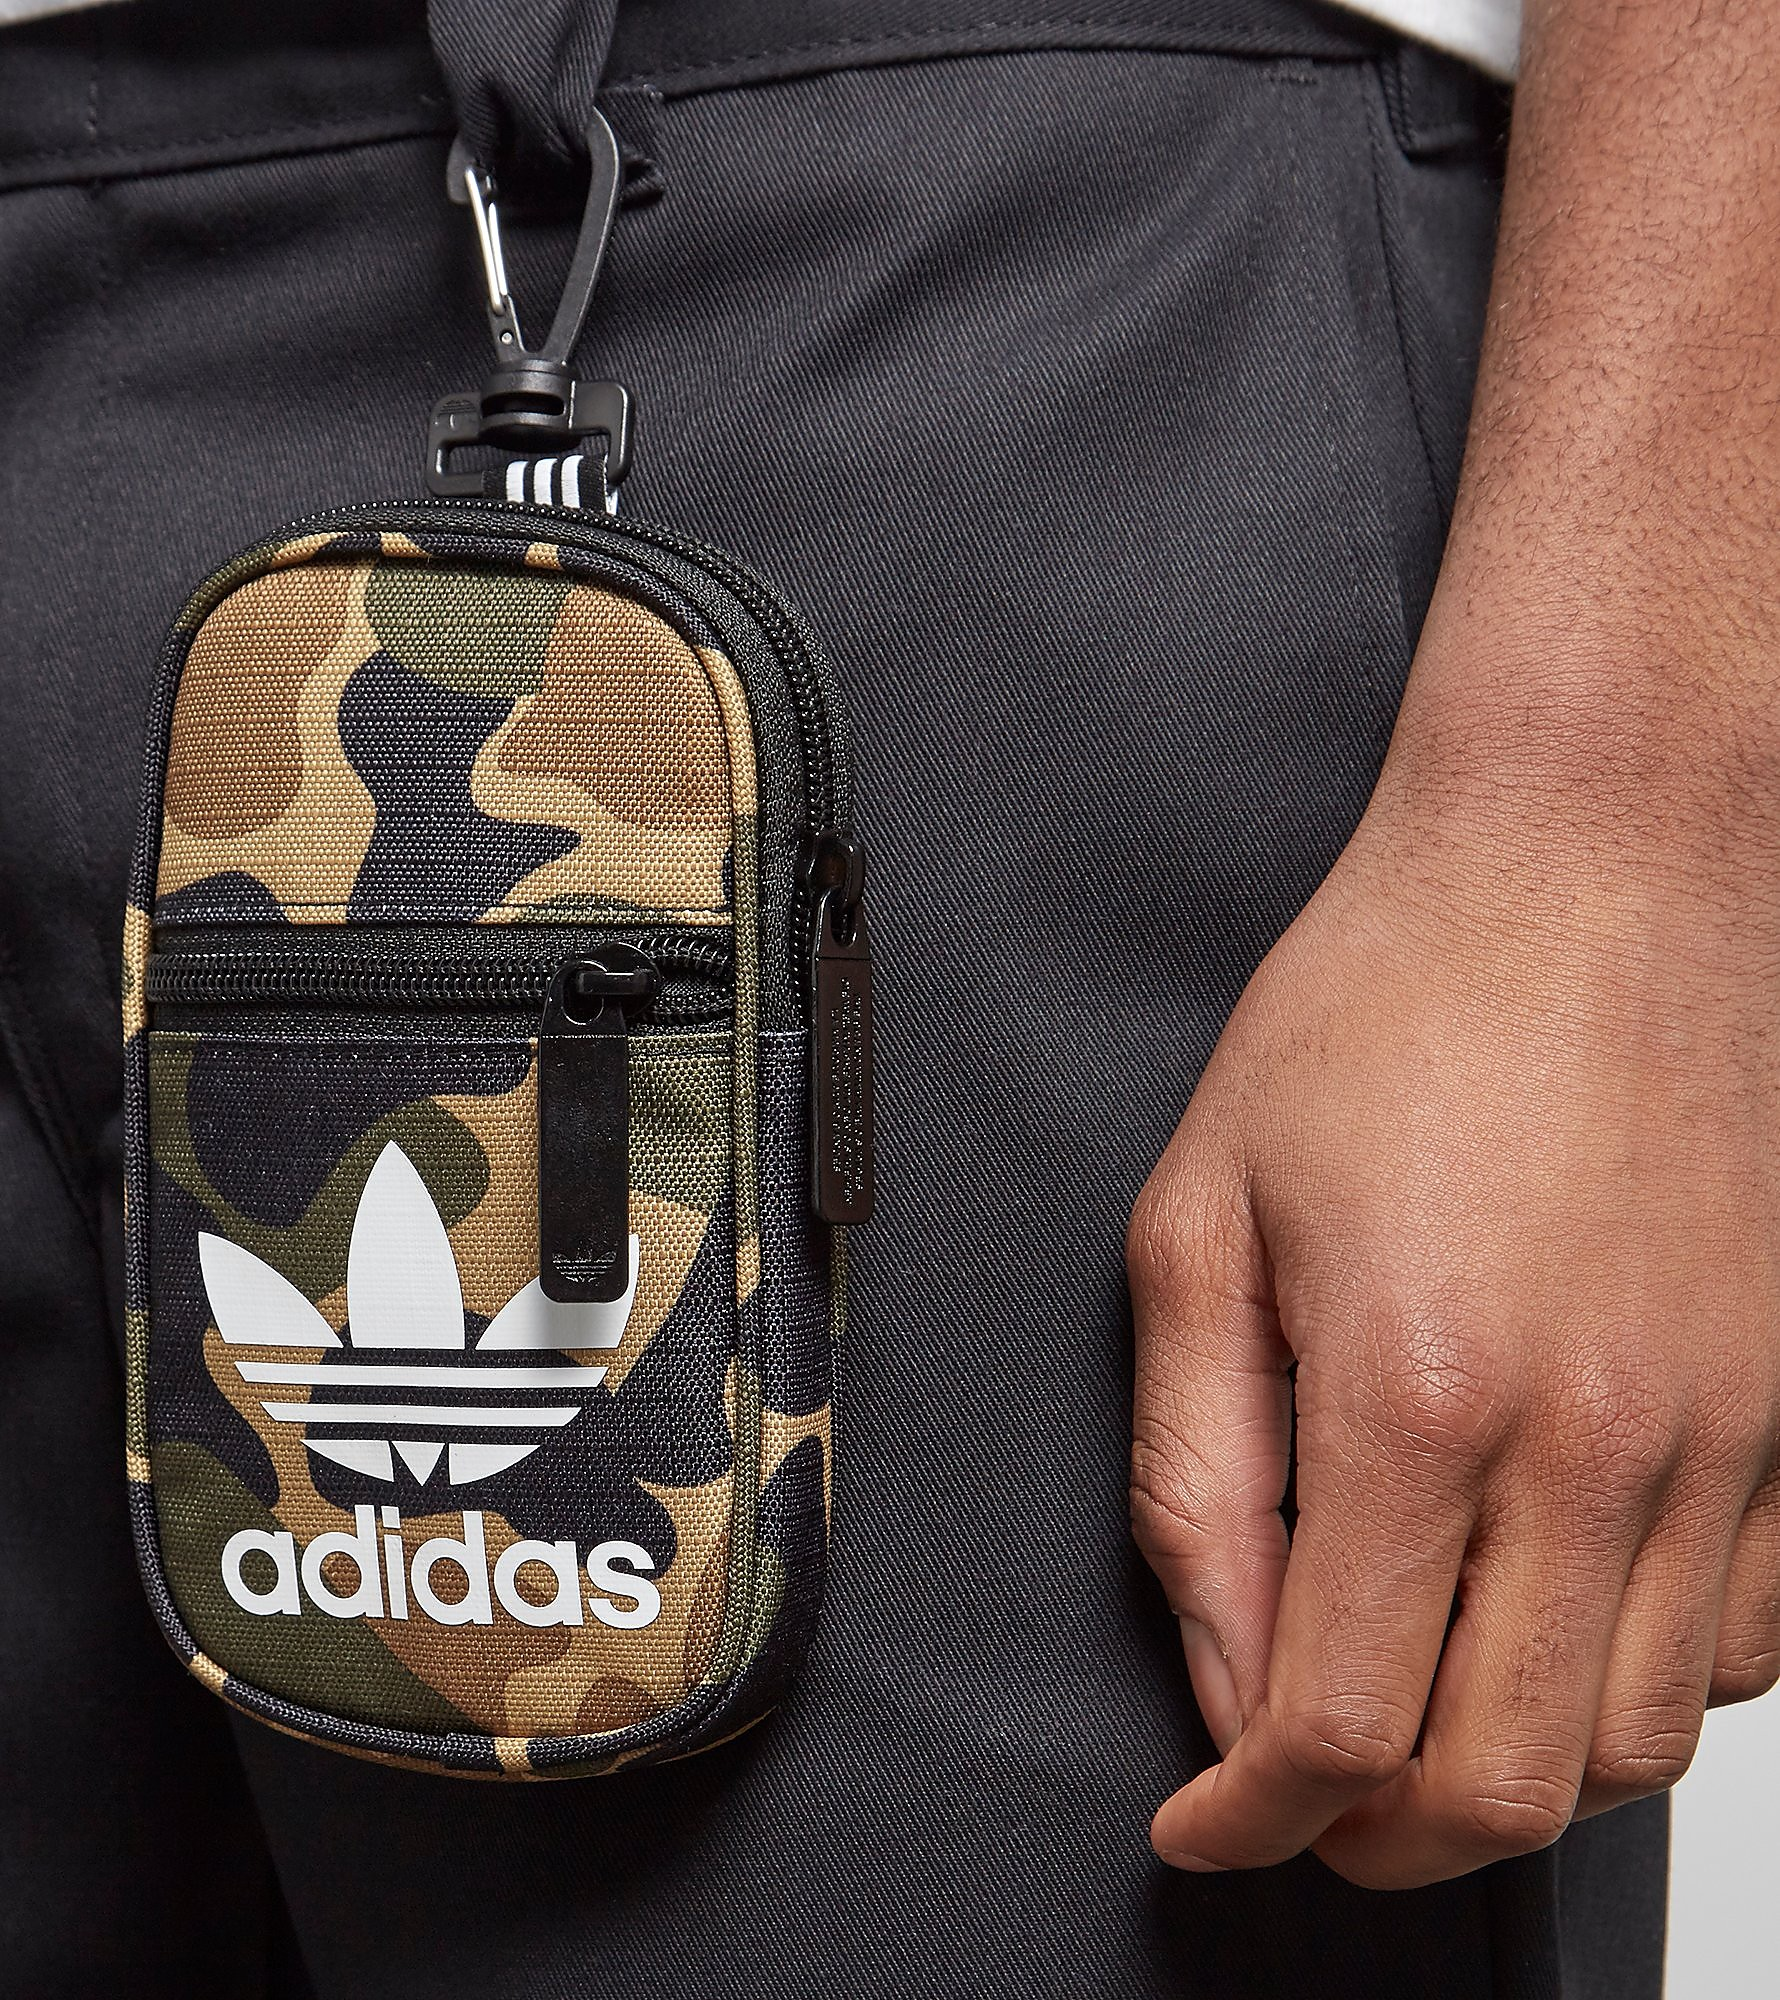 adidas Originals Trefoil Clip Pouch Bag